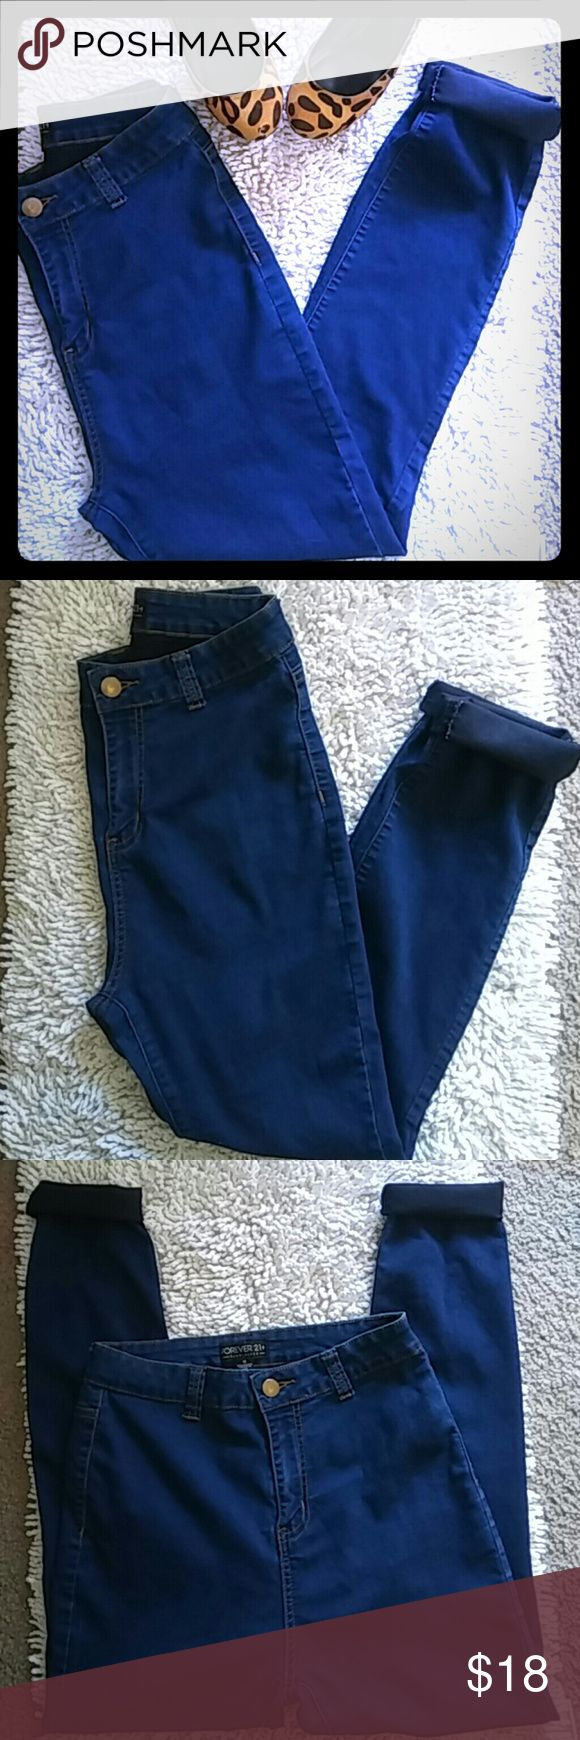 Plus forever 21 high waisted jeggins jeans Size 12 High waisted  Skinny jeans jeggins Dark denim Like new  Same day shipping Bundle discounts Forever 21 Jeans Skinny